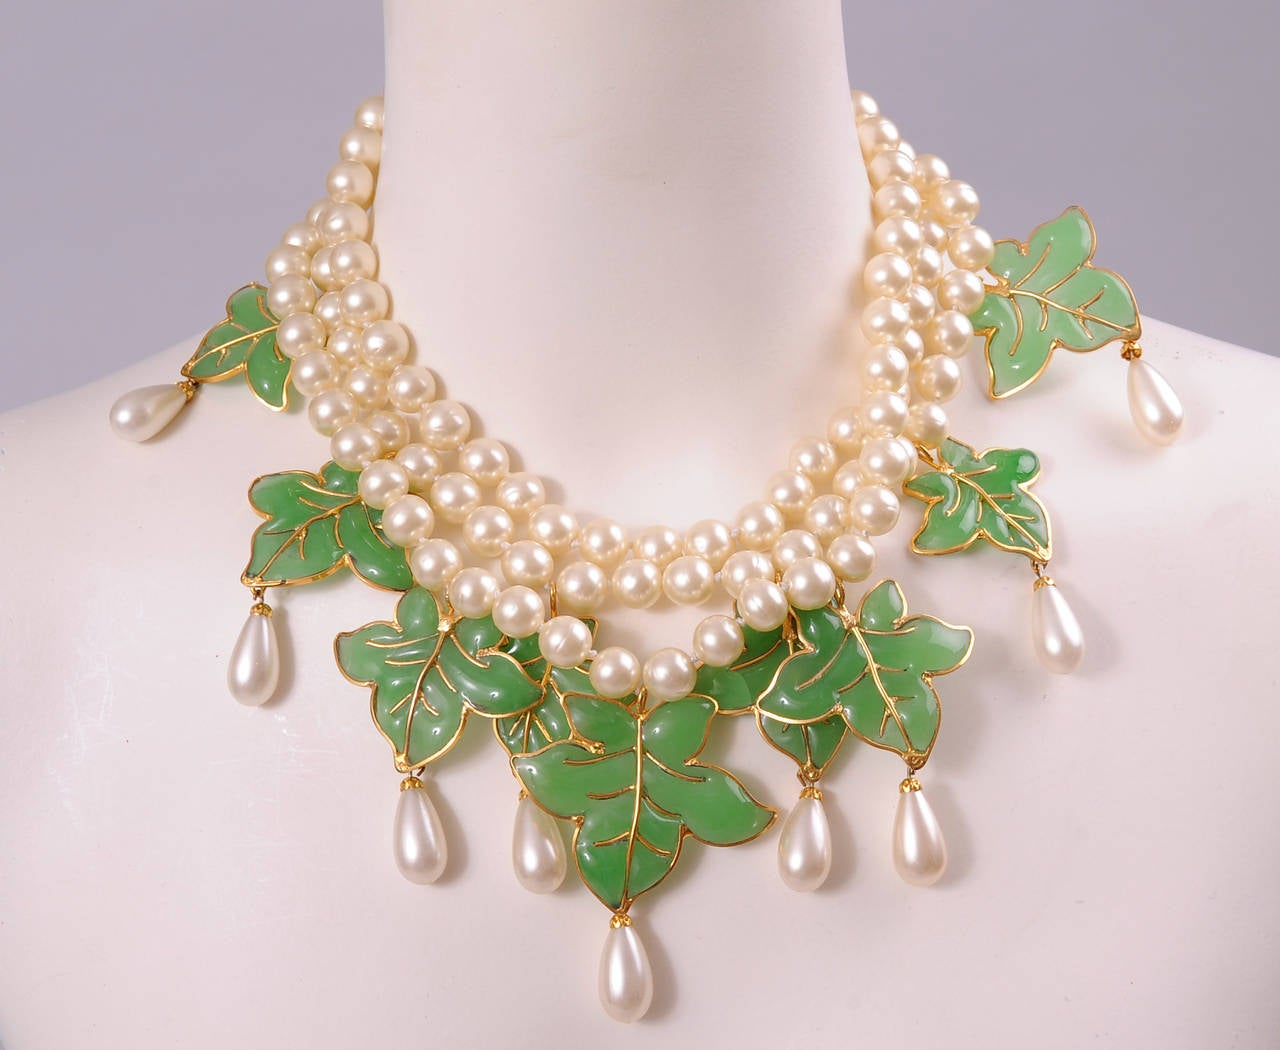 Chanel Signed Haute Couture Gripoix Leaves and Pearl Necklace & Earrings 3